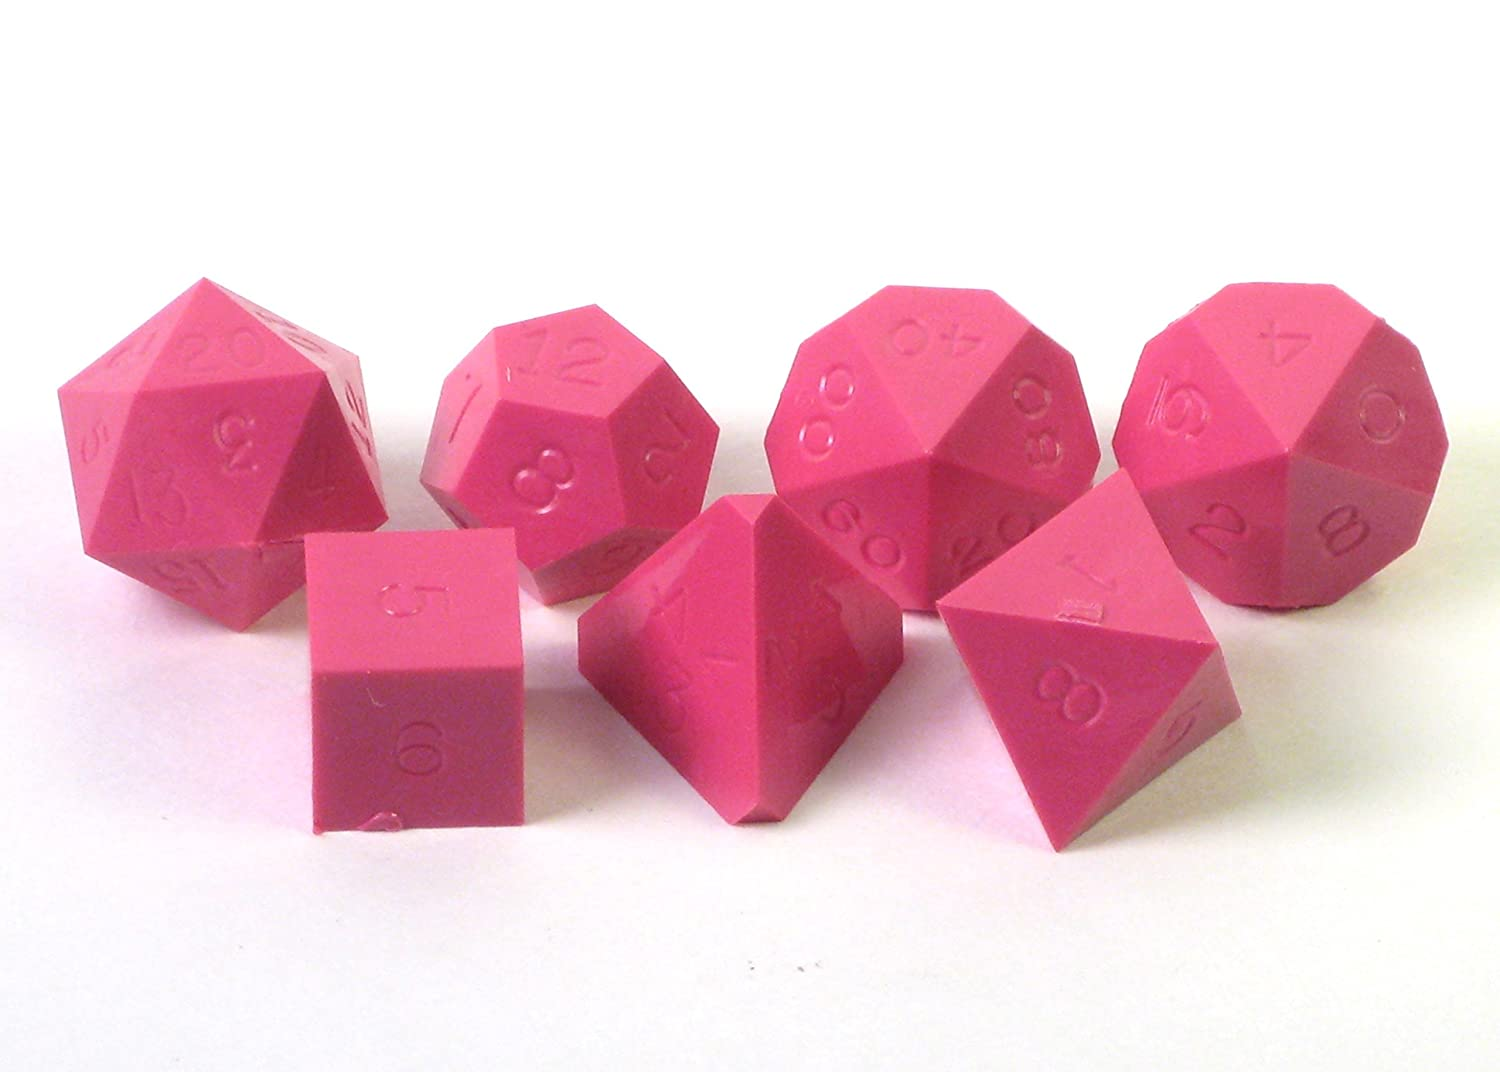 GameScience: Polyhedral 7-Die Set - Opaque Un-Inked